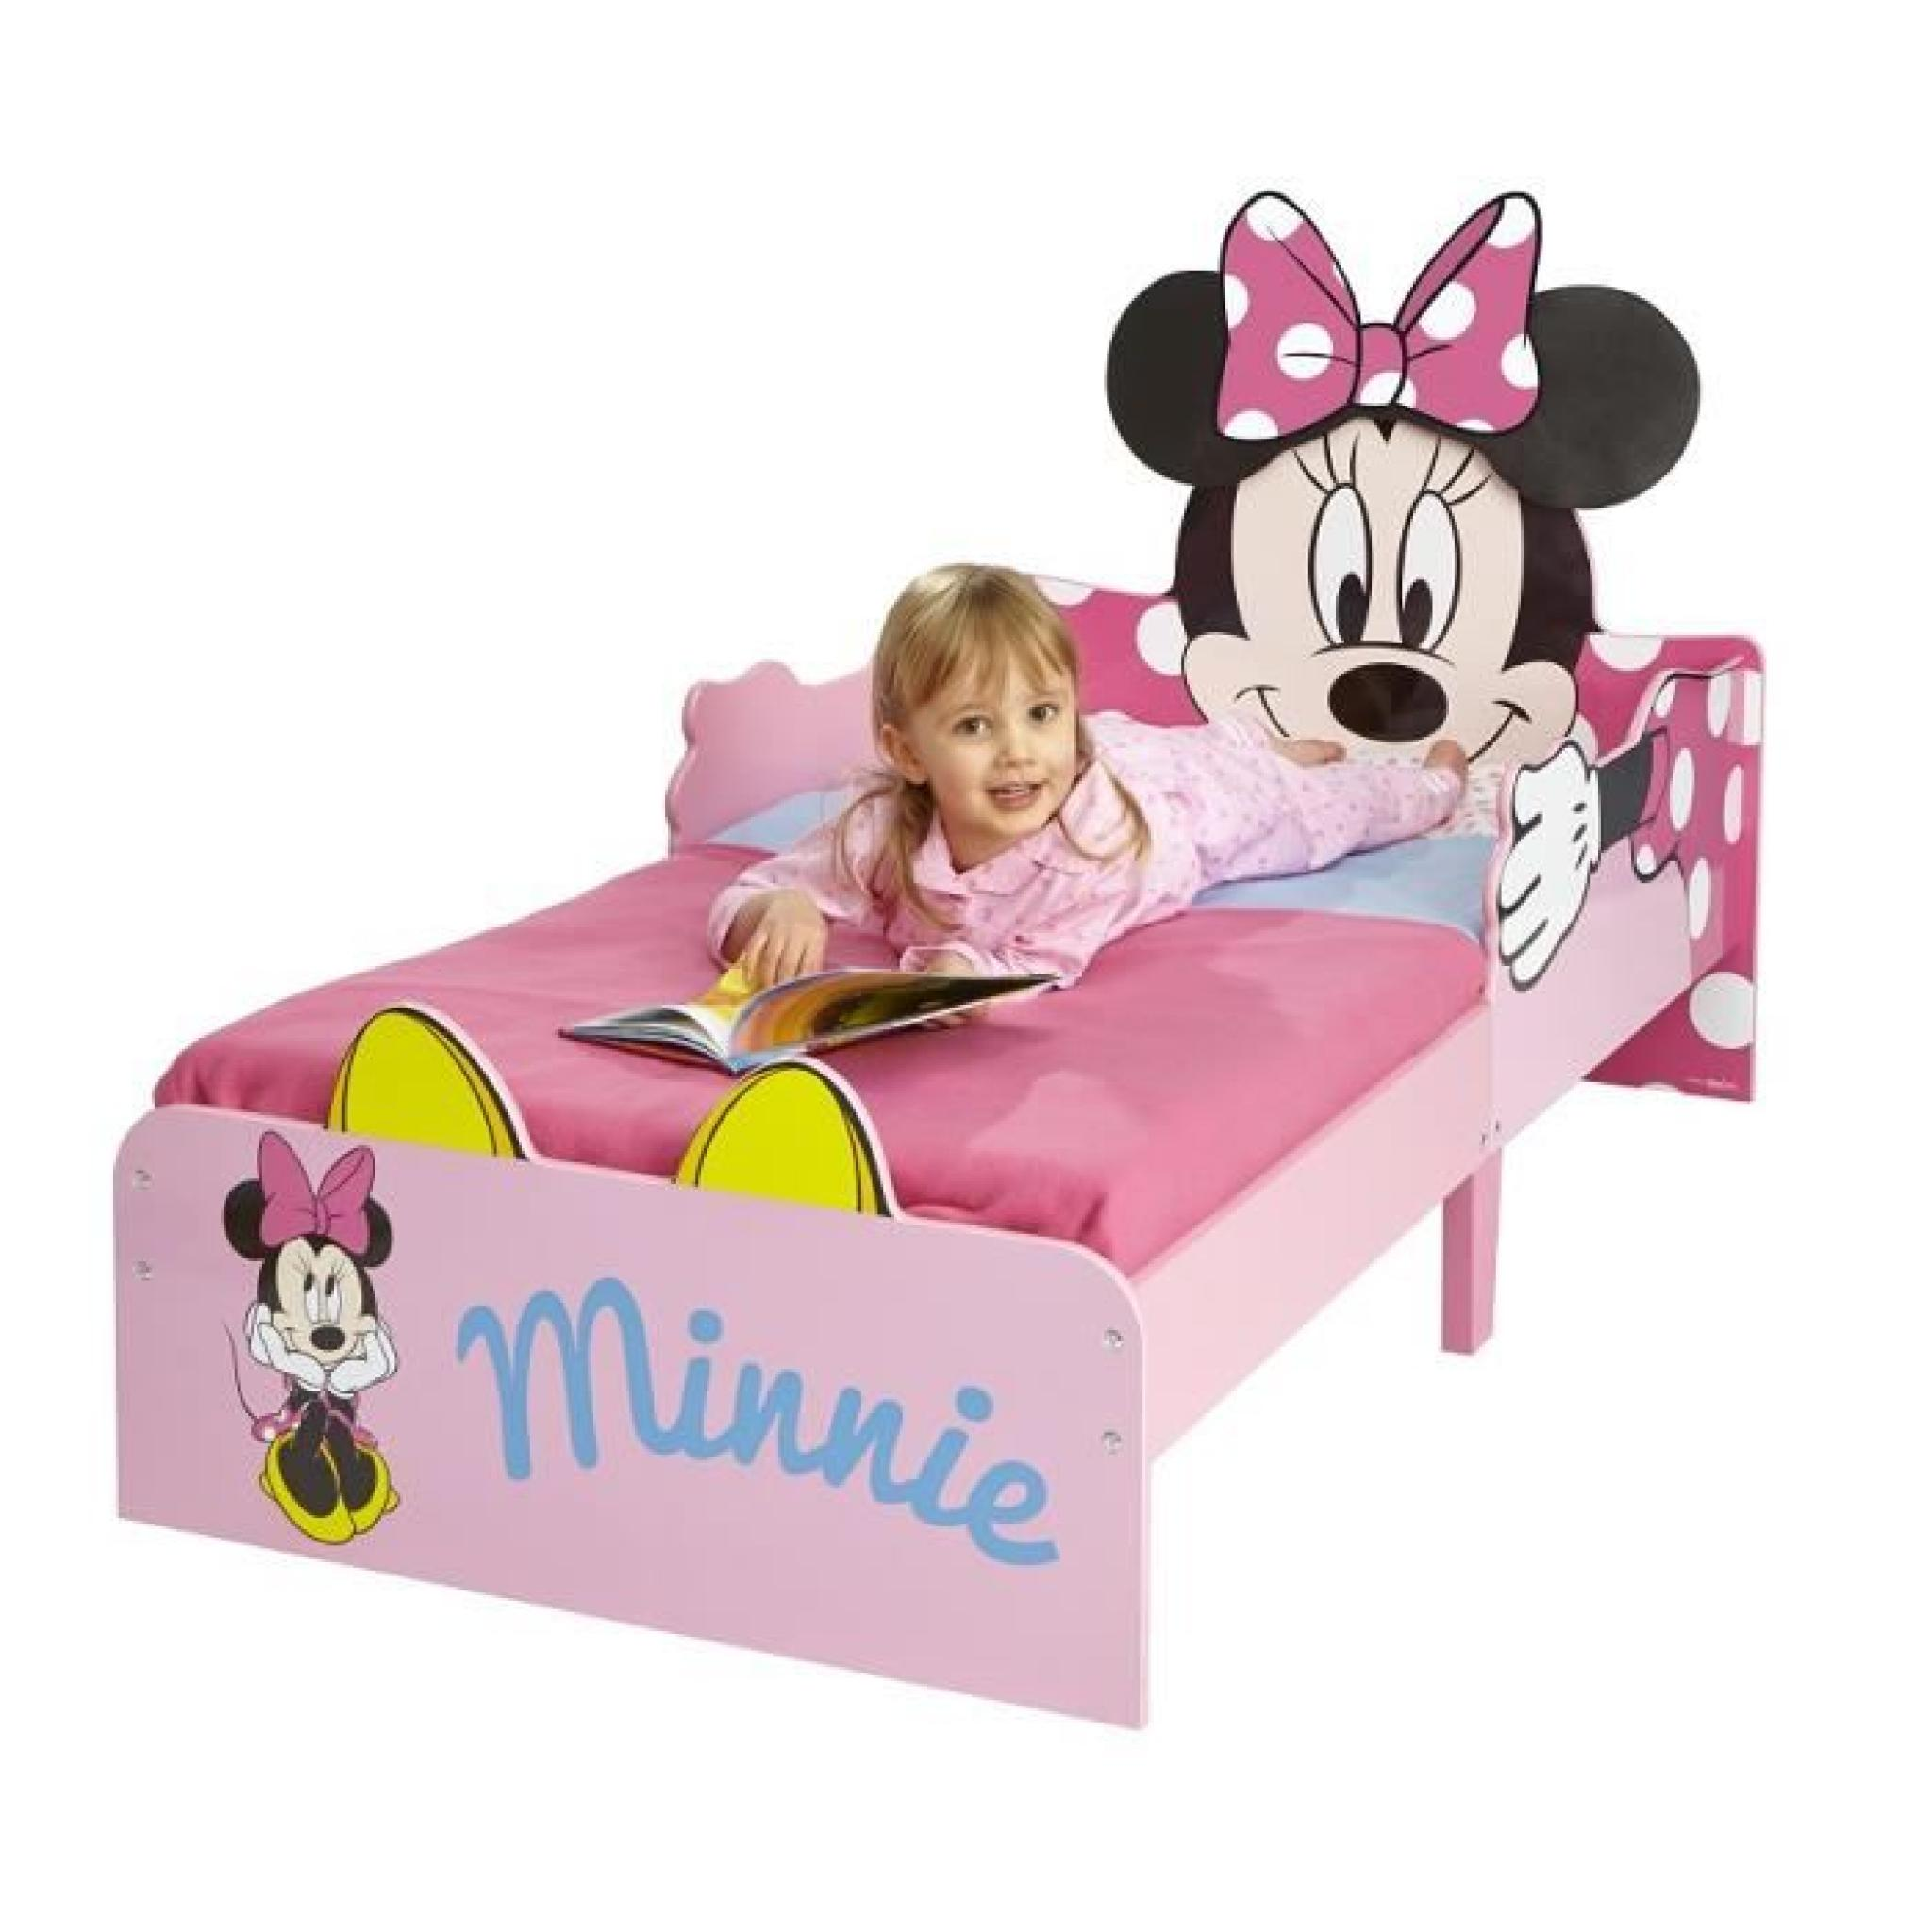 lit enfant minnie 70x140 achat vente lit pas cher couleur et. Black Bedroom Furniture Sets. Home Design Ideas